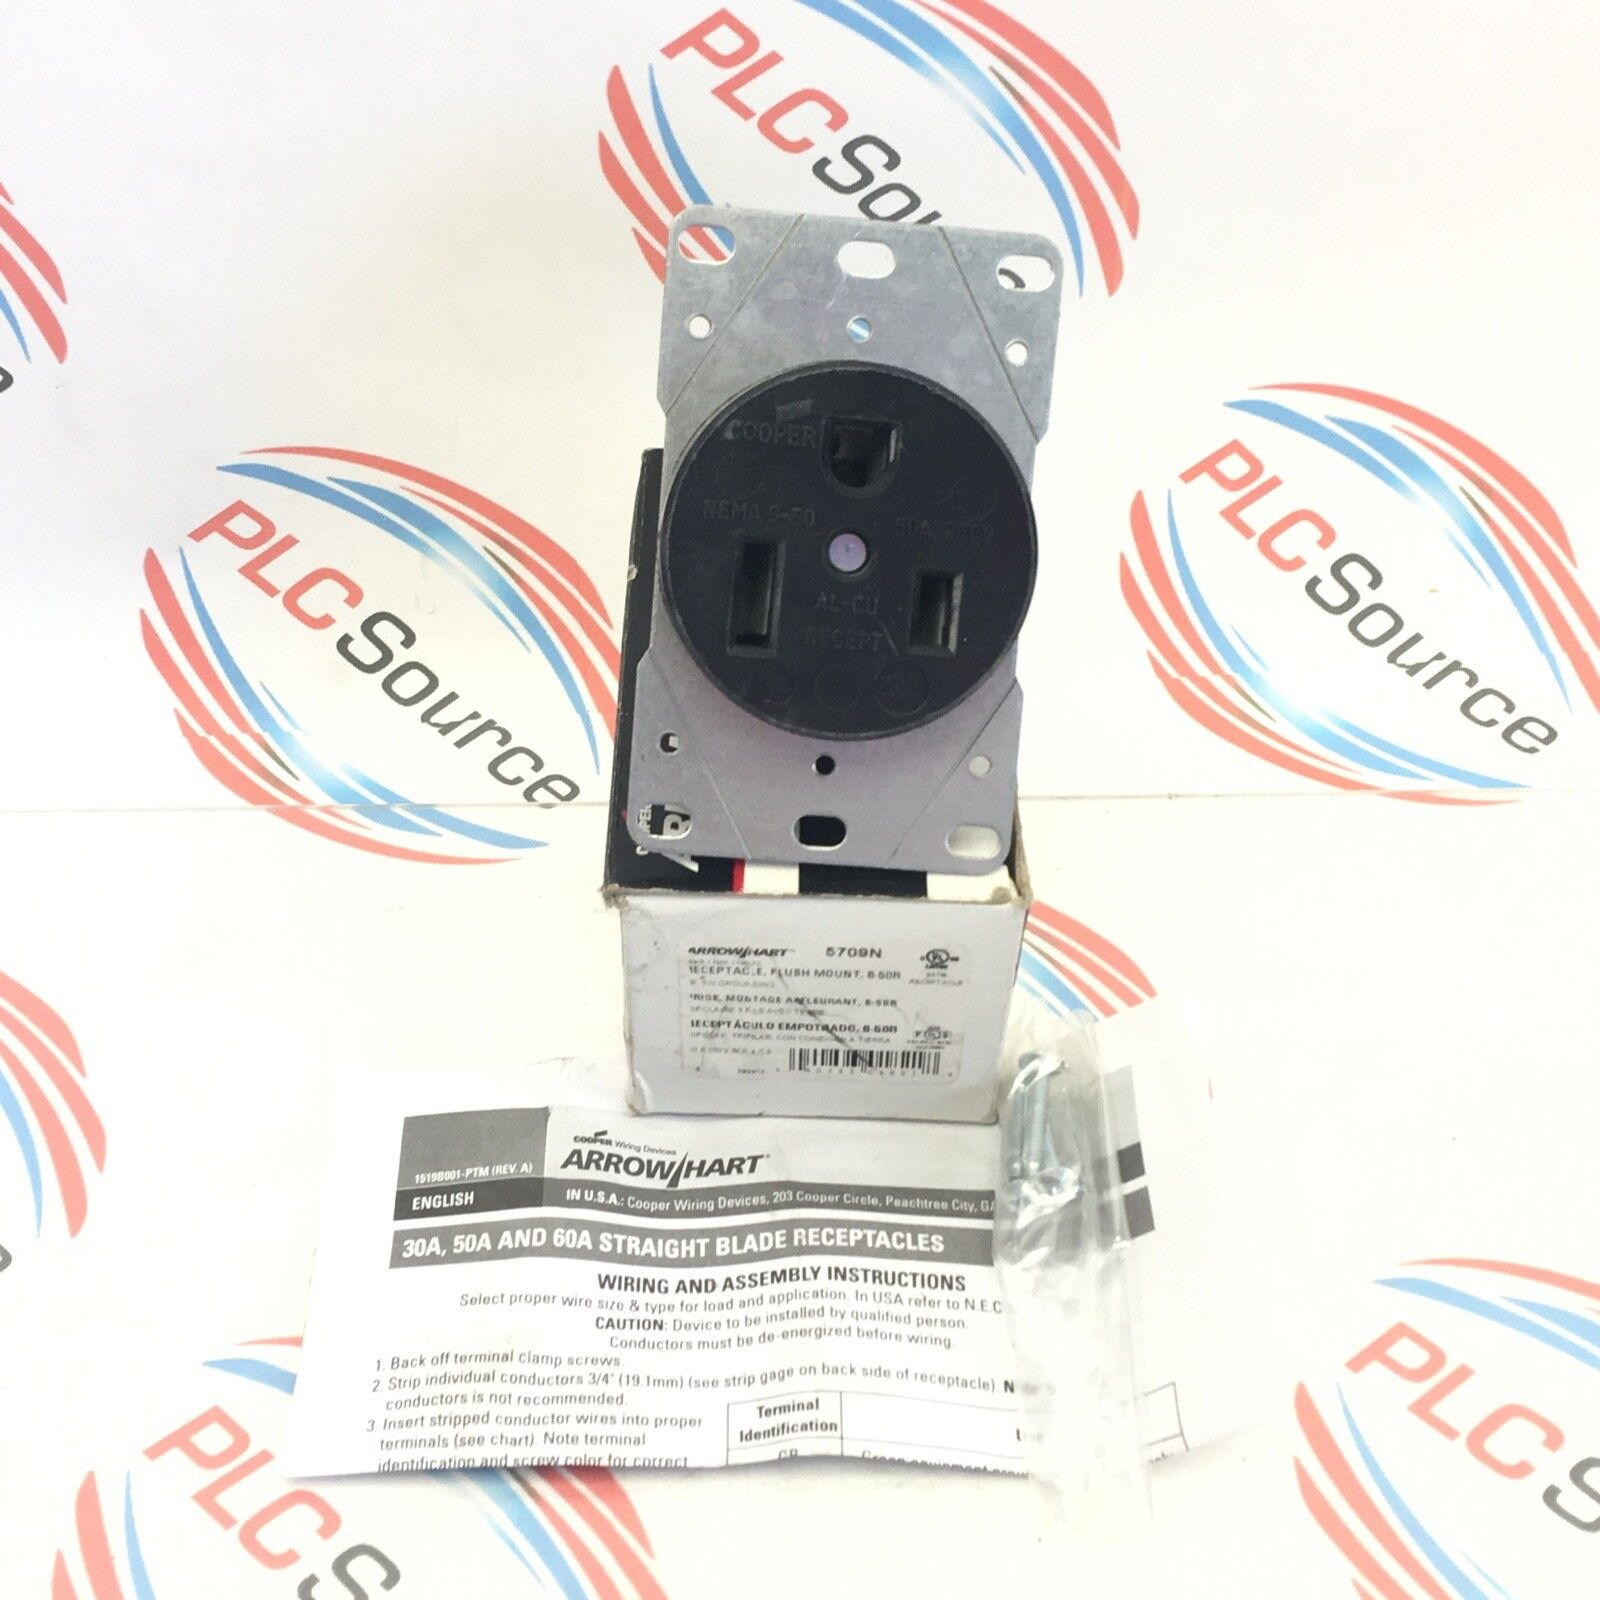 Cooper Arrow Hart 5709n Flush Mount Receptacle 6 50r Ebay Wiring Devices Norton Secured Powered By Verisign